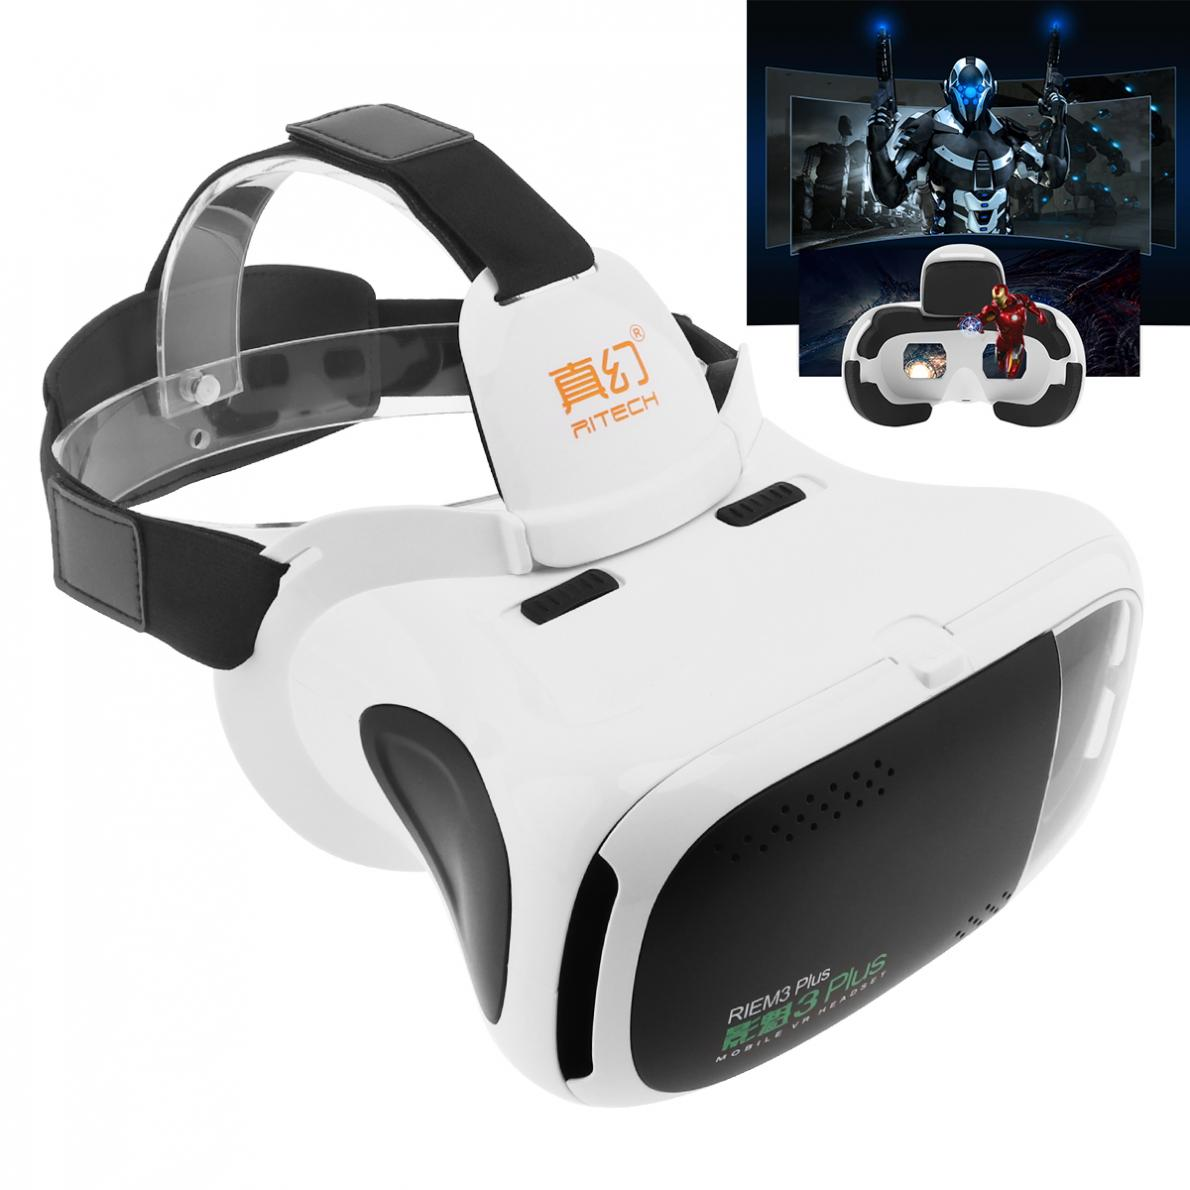 RIEM3 Plus ABS Head-mounted 3D Virtual Reality VR Glasses With AR Function and Buffer Sponge for 4.7 - 6 Inch Phone